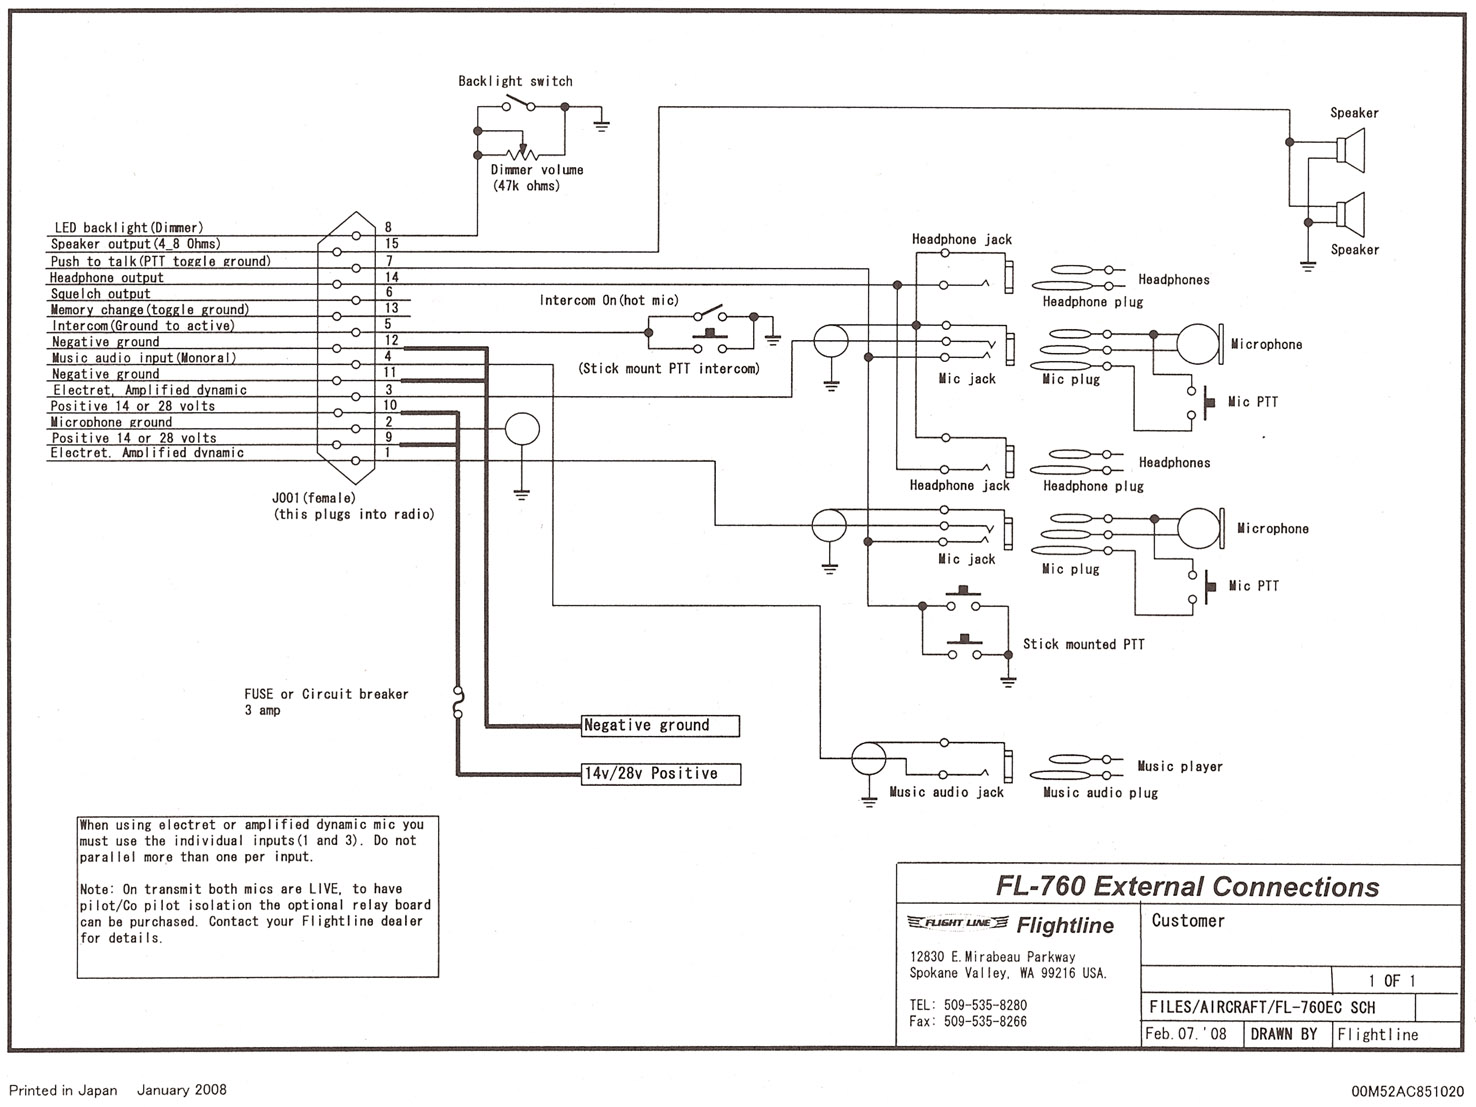 aircraft audio jack wiring #10 on 3.5Mm Plug Wiring Diagram for aircraft audio jack wiring #10 at Audio Jack Soldering